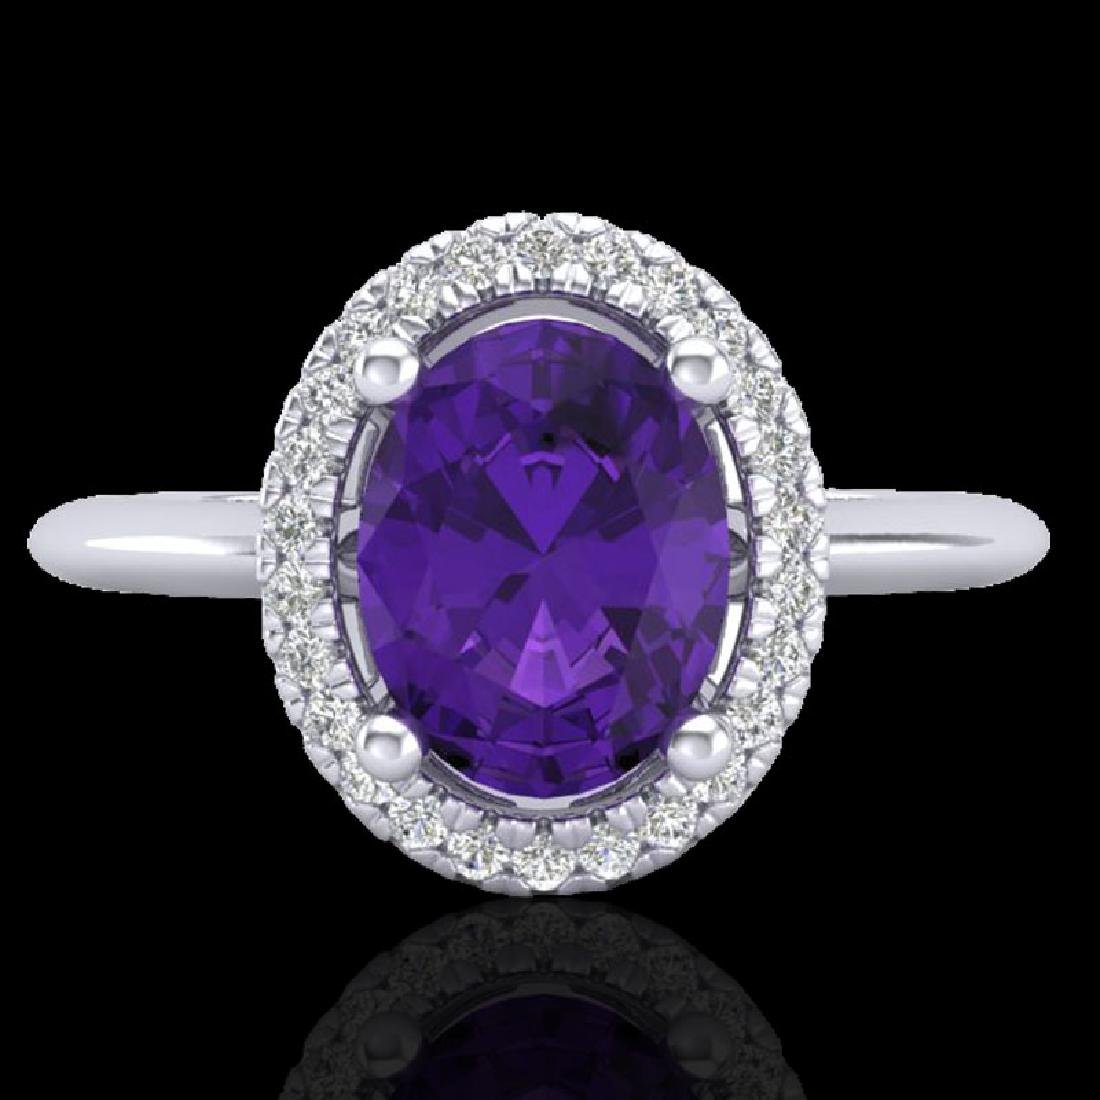 1.75 CTW Amethyst & Micro VS/SI Diamond Ring Solitaire